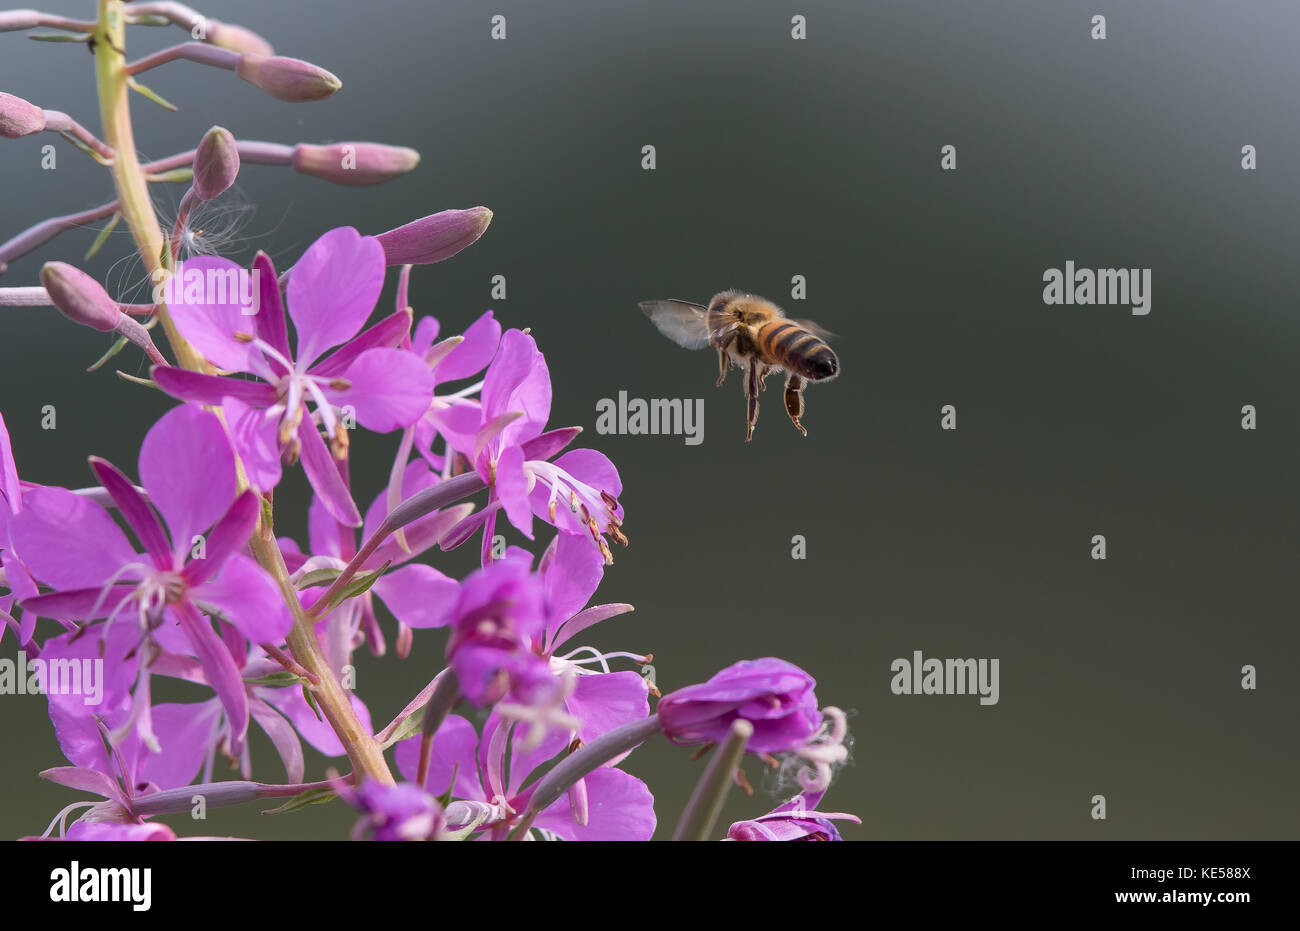 Detailed close up (macro photography) of solitary honeybee hovering near flowering pink rosebay willowherb plant, - Stock Image